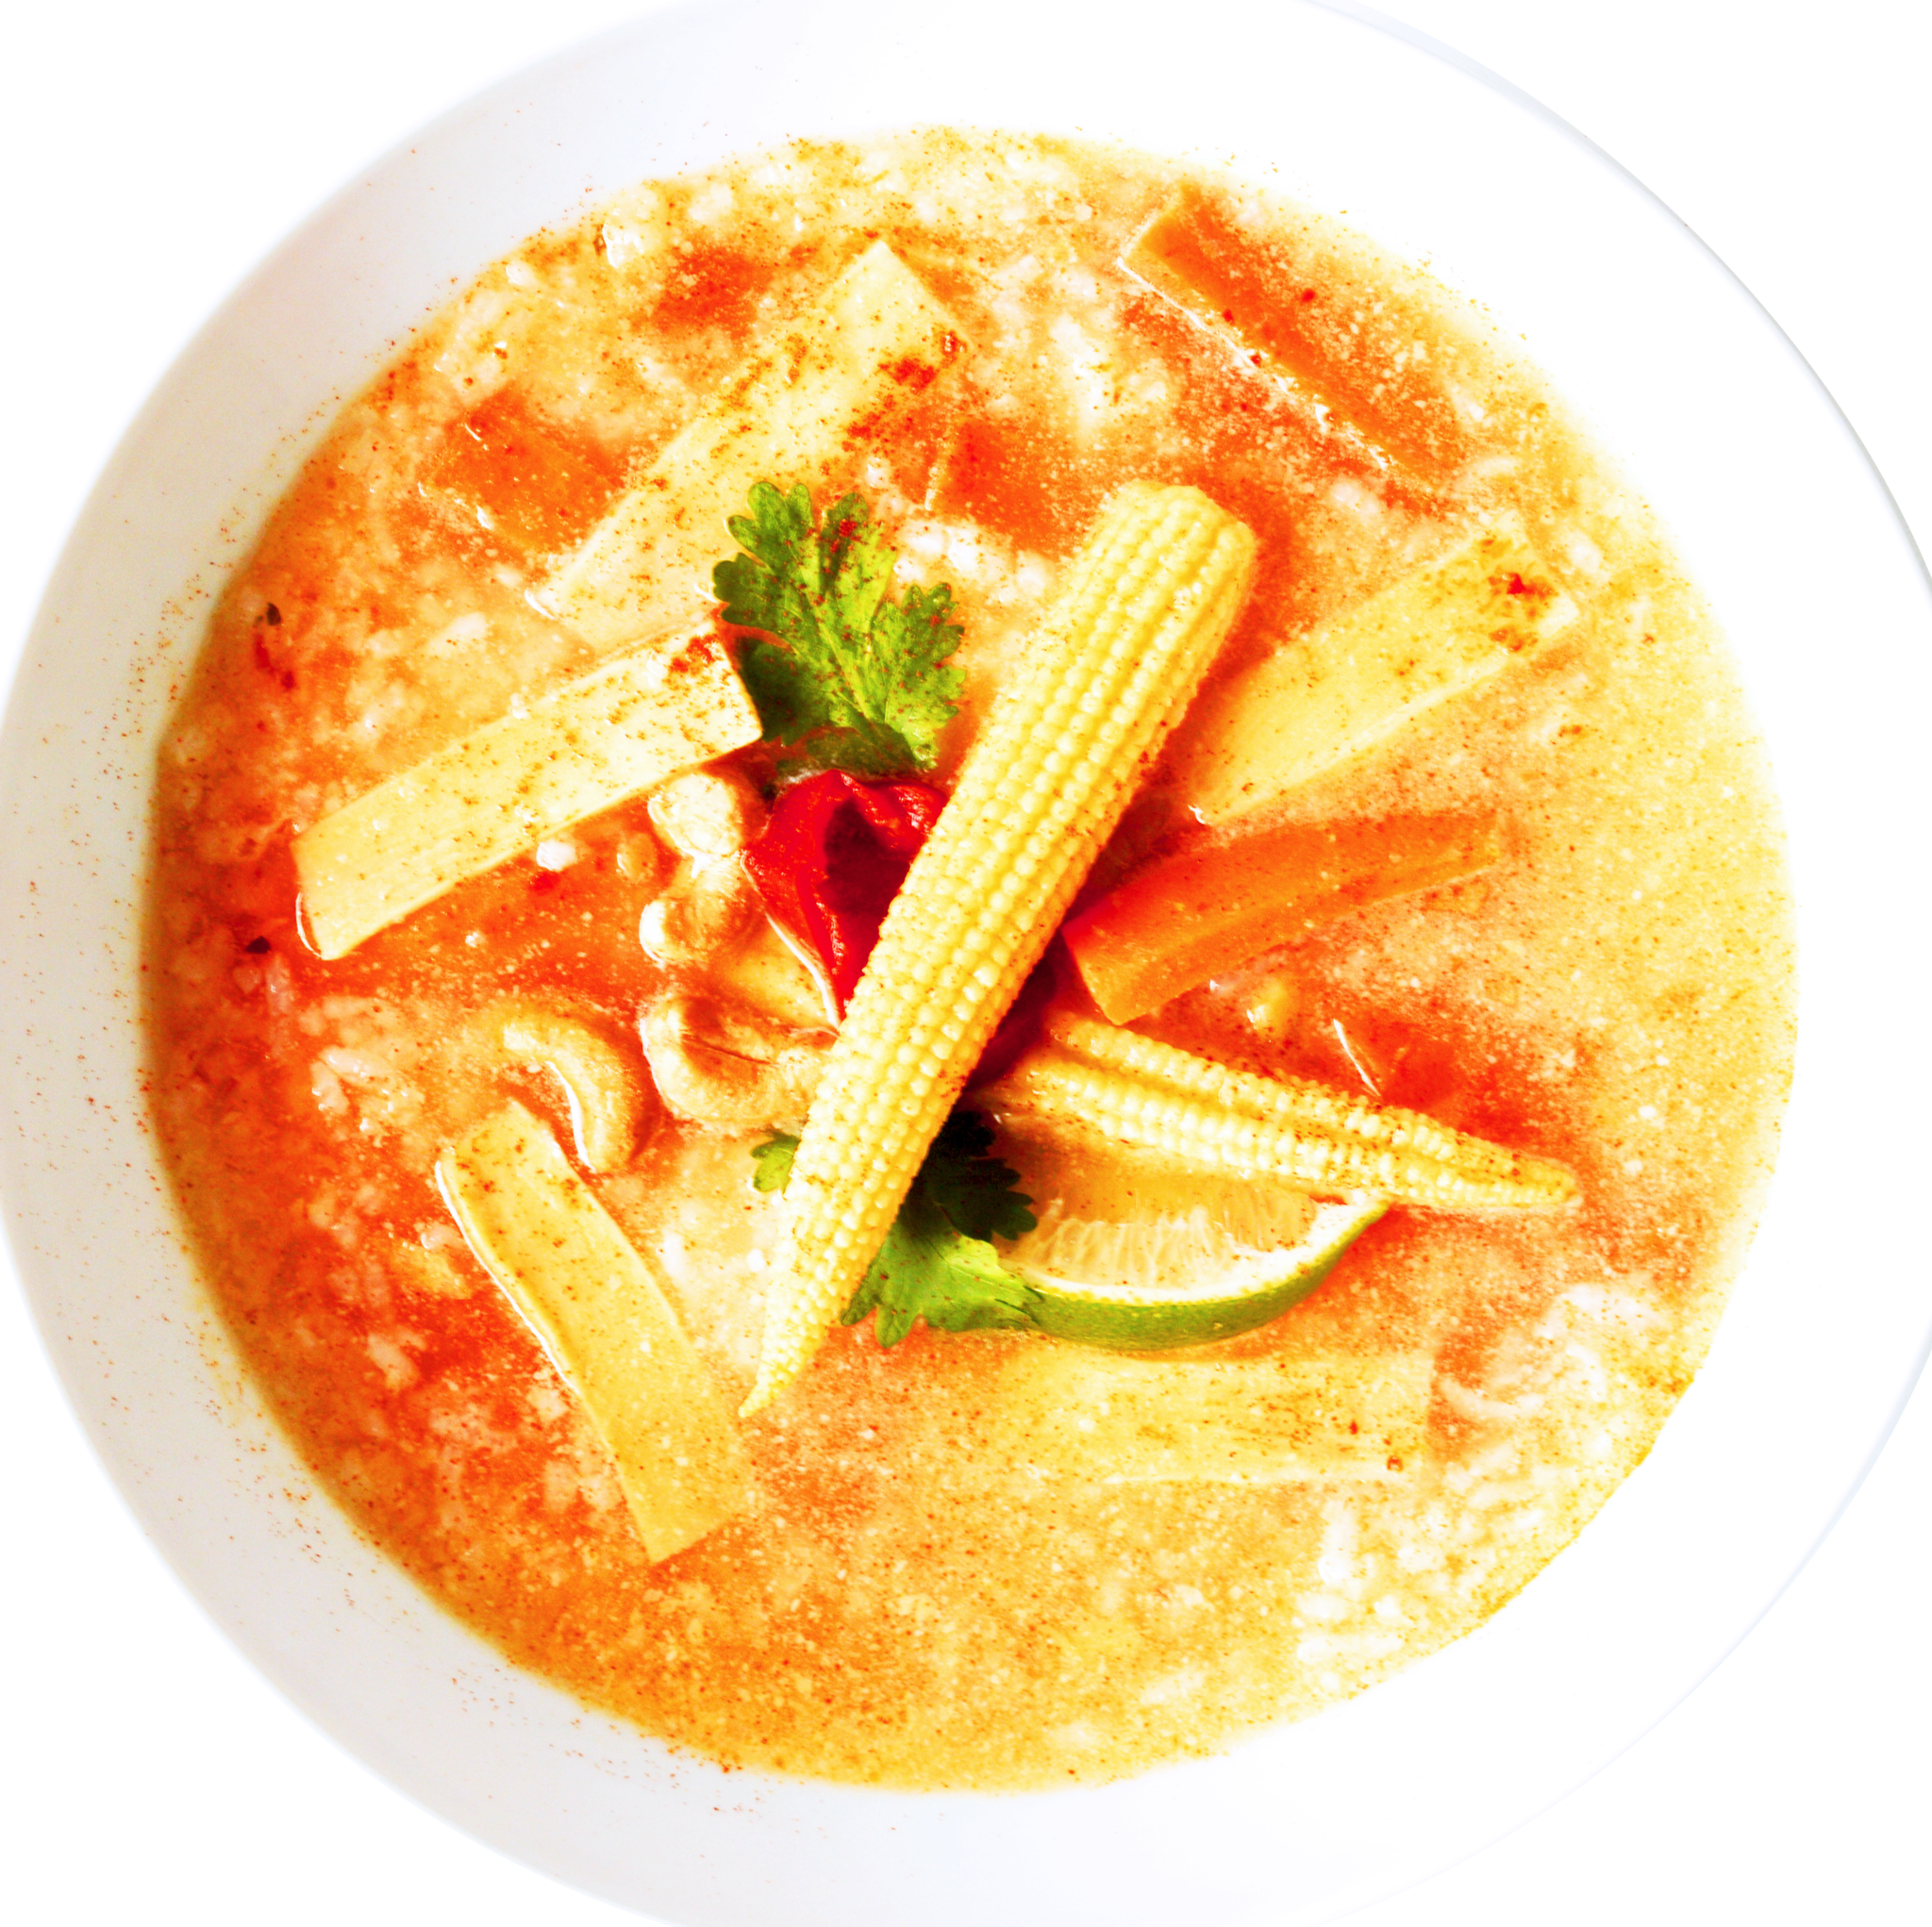 Soups and pottages